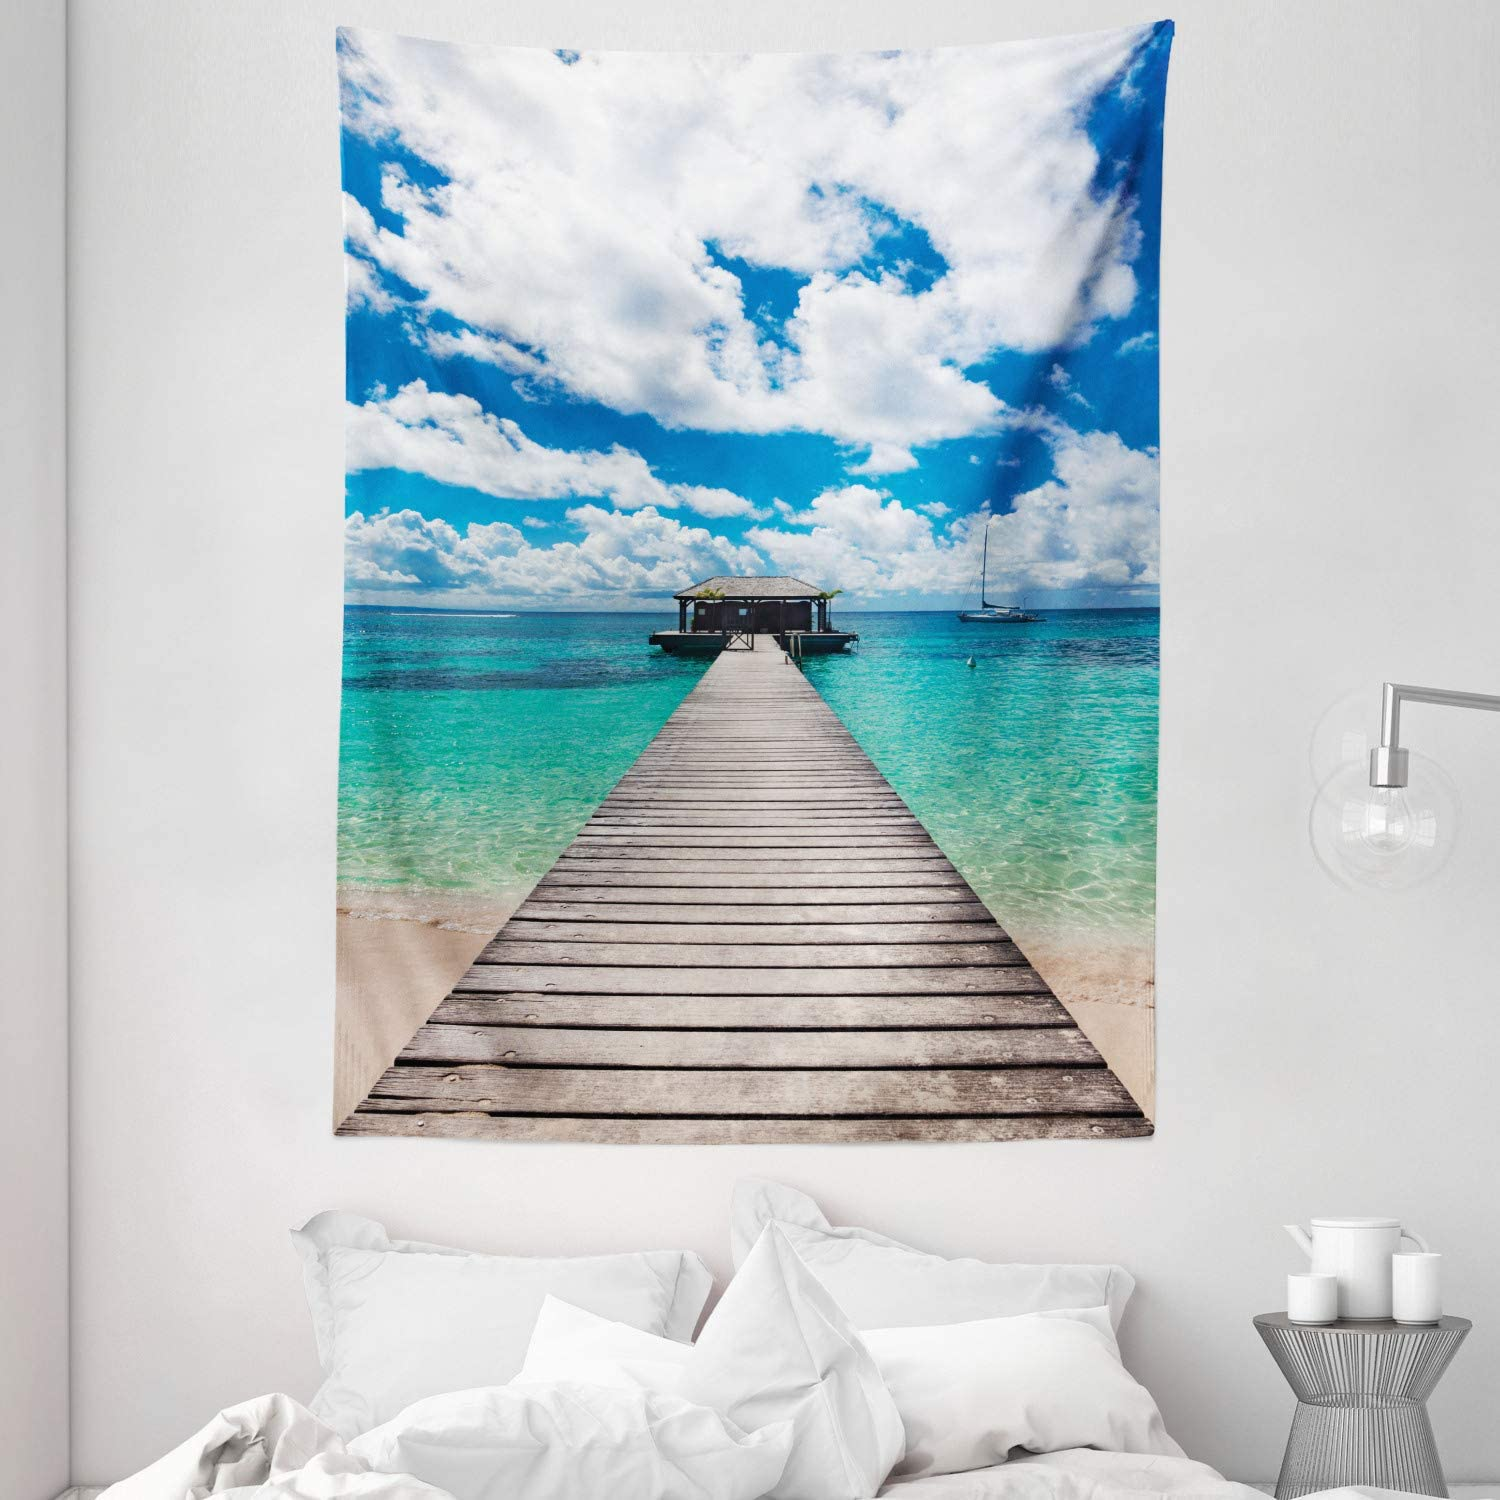 """Ambesonne Ocean Tapestry, Caribbean Seascape with Jetty and Sail Boat Cloudy Sky Clear Exotic Ocean, Wall Hanging for Bedroom Living Room Dorm Decor, 60"""" X 80"""", Turquoise White"""